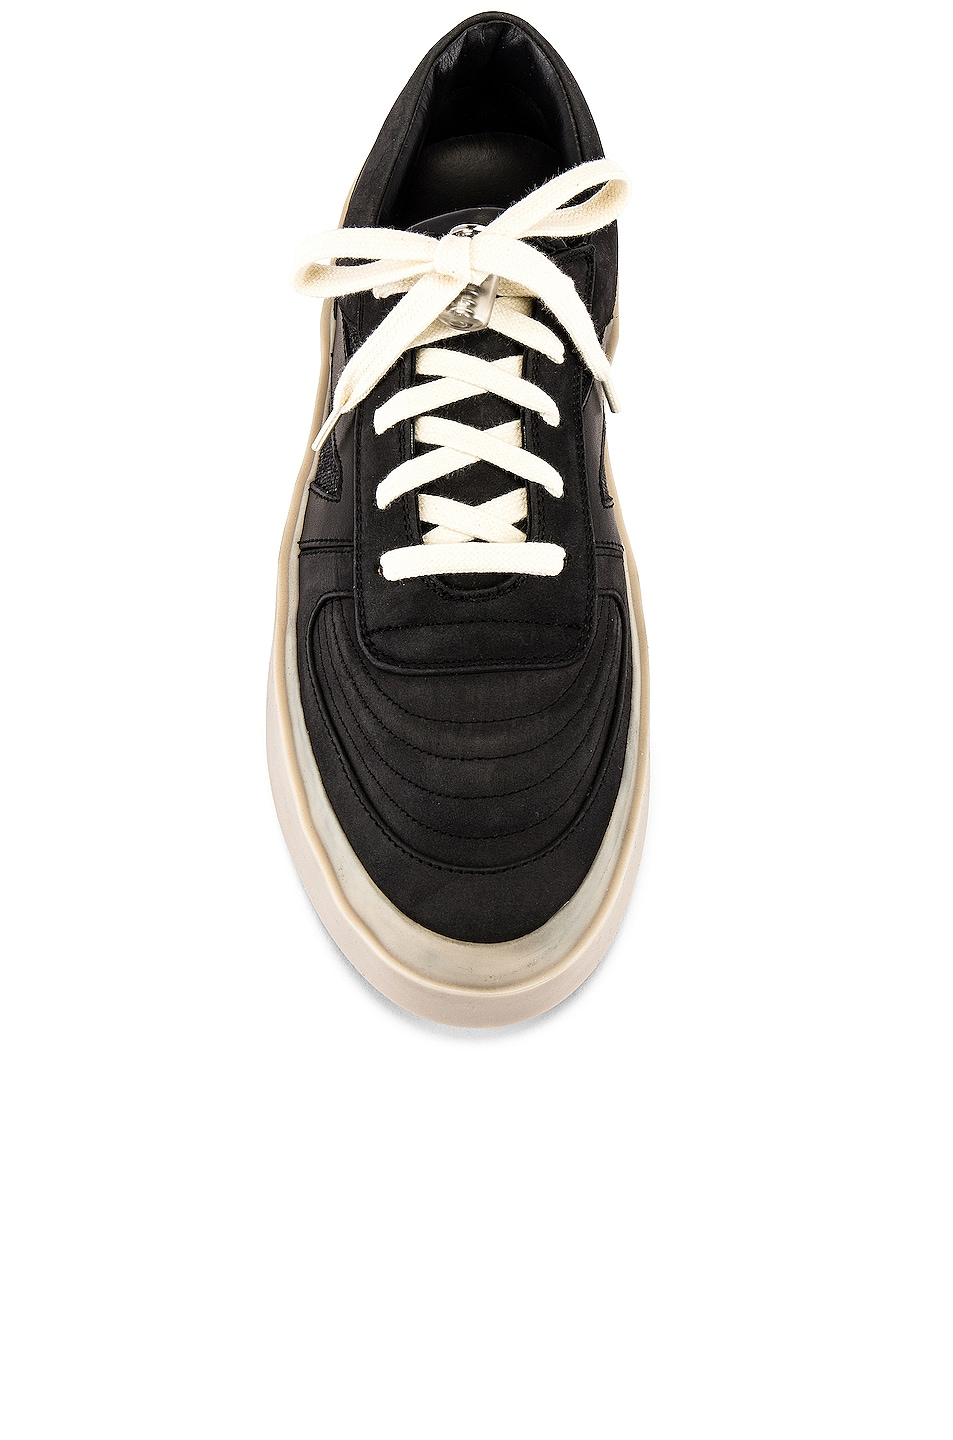 Image 4 of Fear of God Strapless Skate Mid in Black & Grey Gum Sole